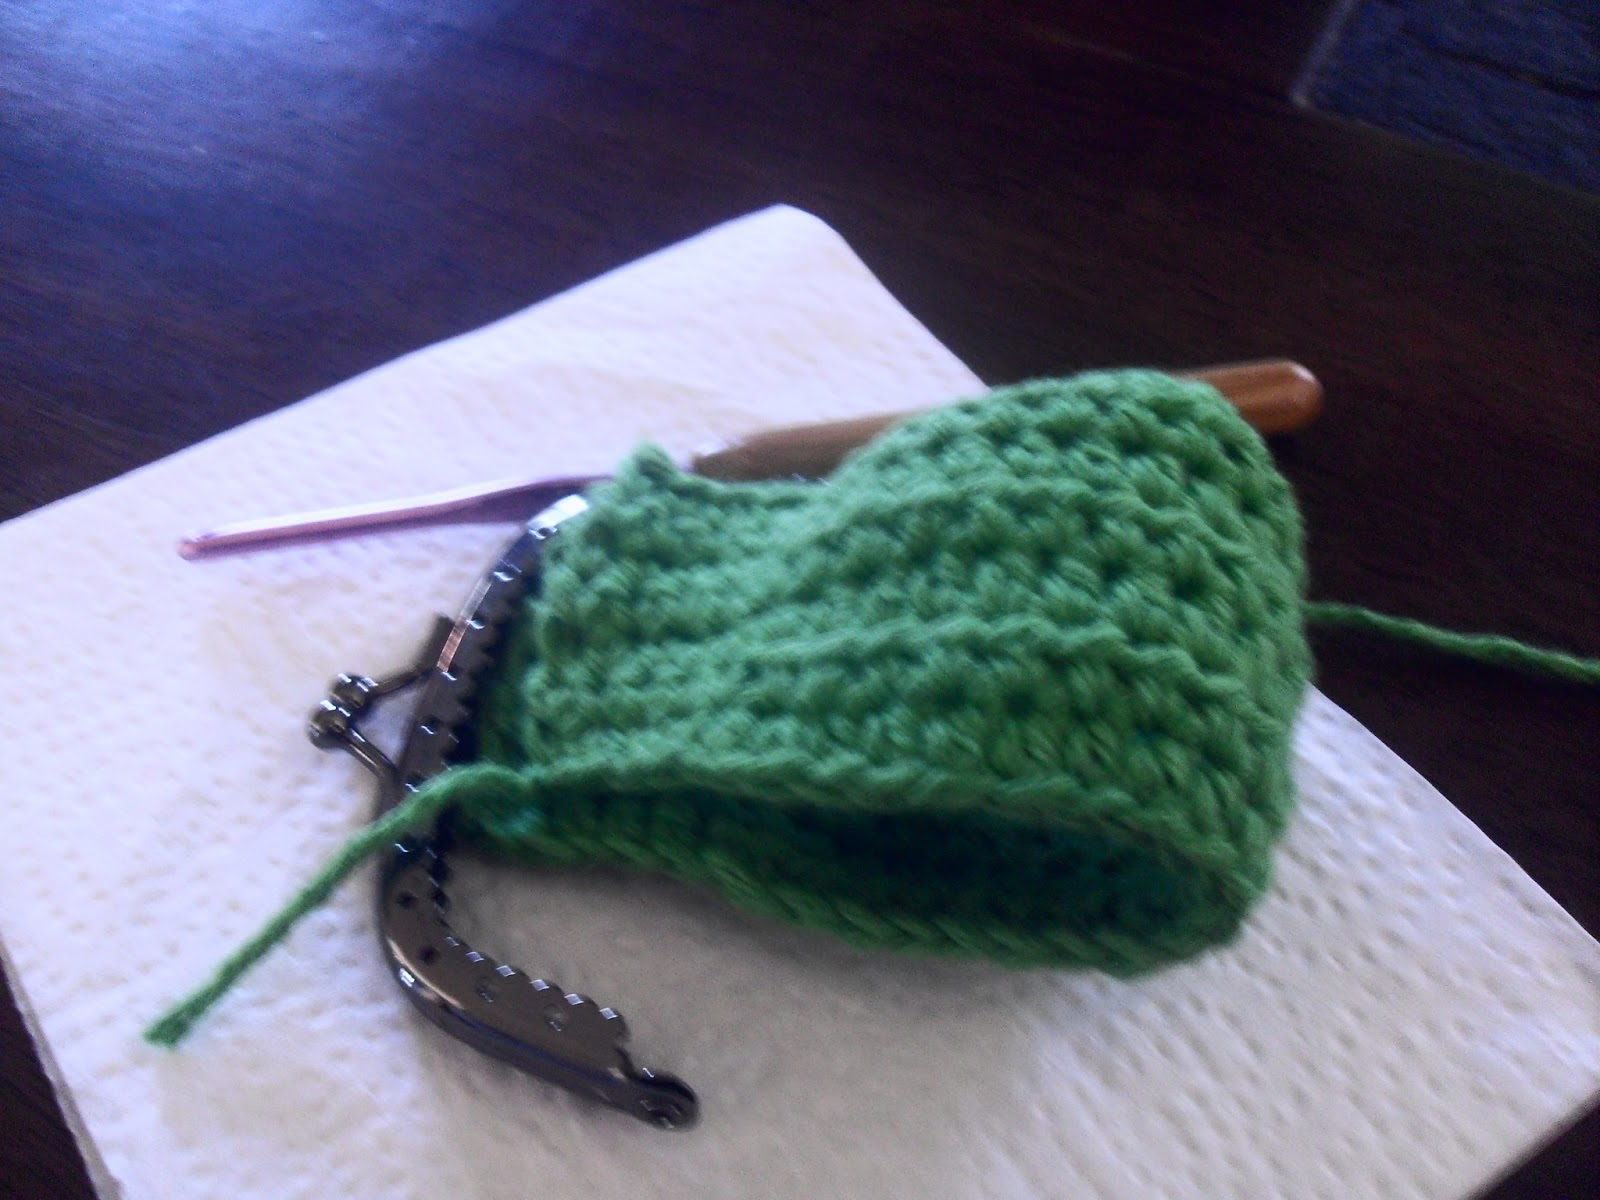 Coin Purse Crochet Pattern : About half way....The shape is becoming more apparent...